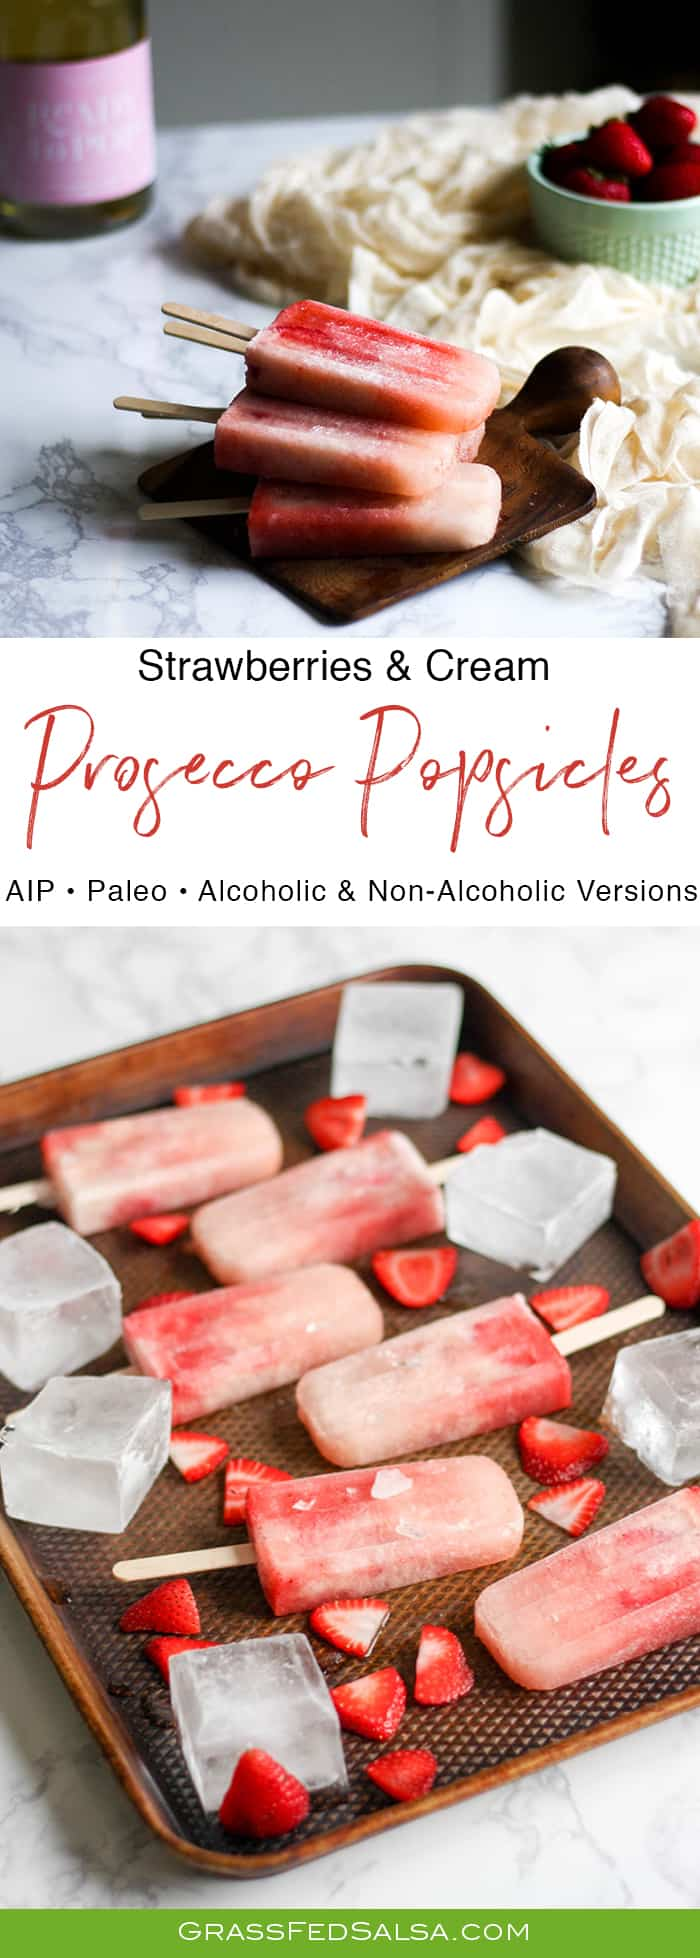 Strawberries and Cream Prosecco Popsicles | AIP, Paleo, and Non-Alcoholic Versions